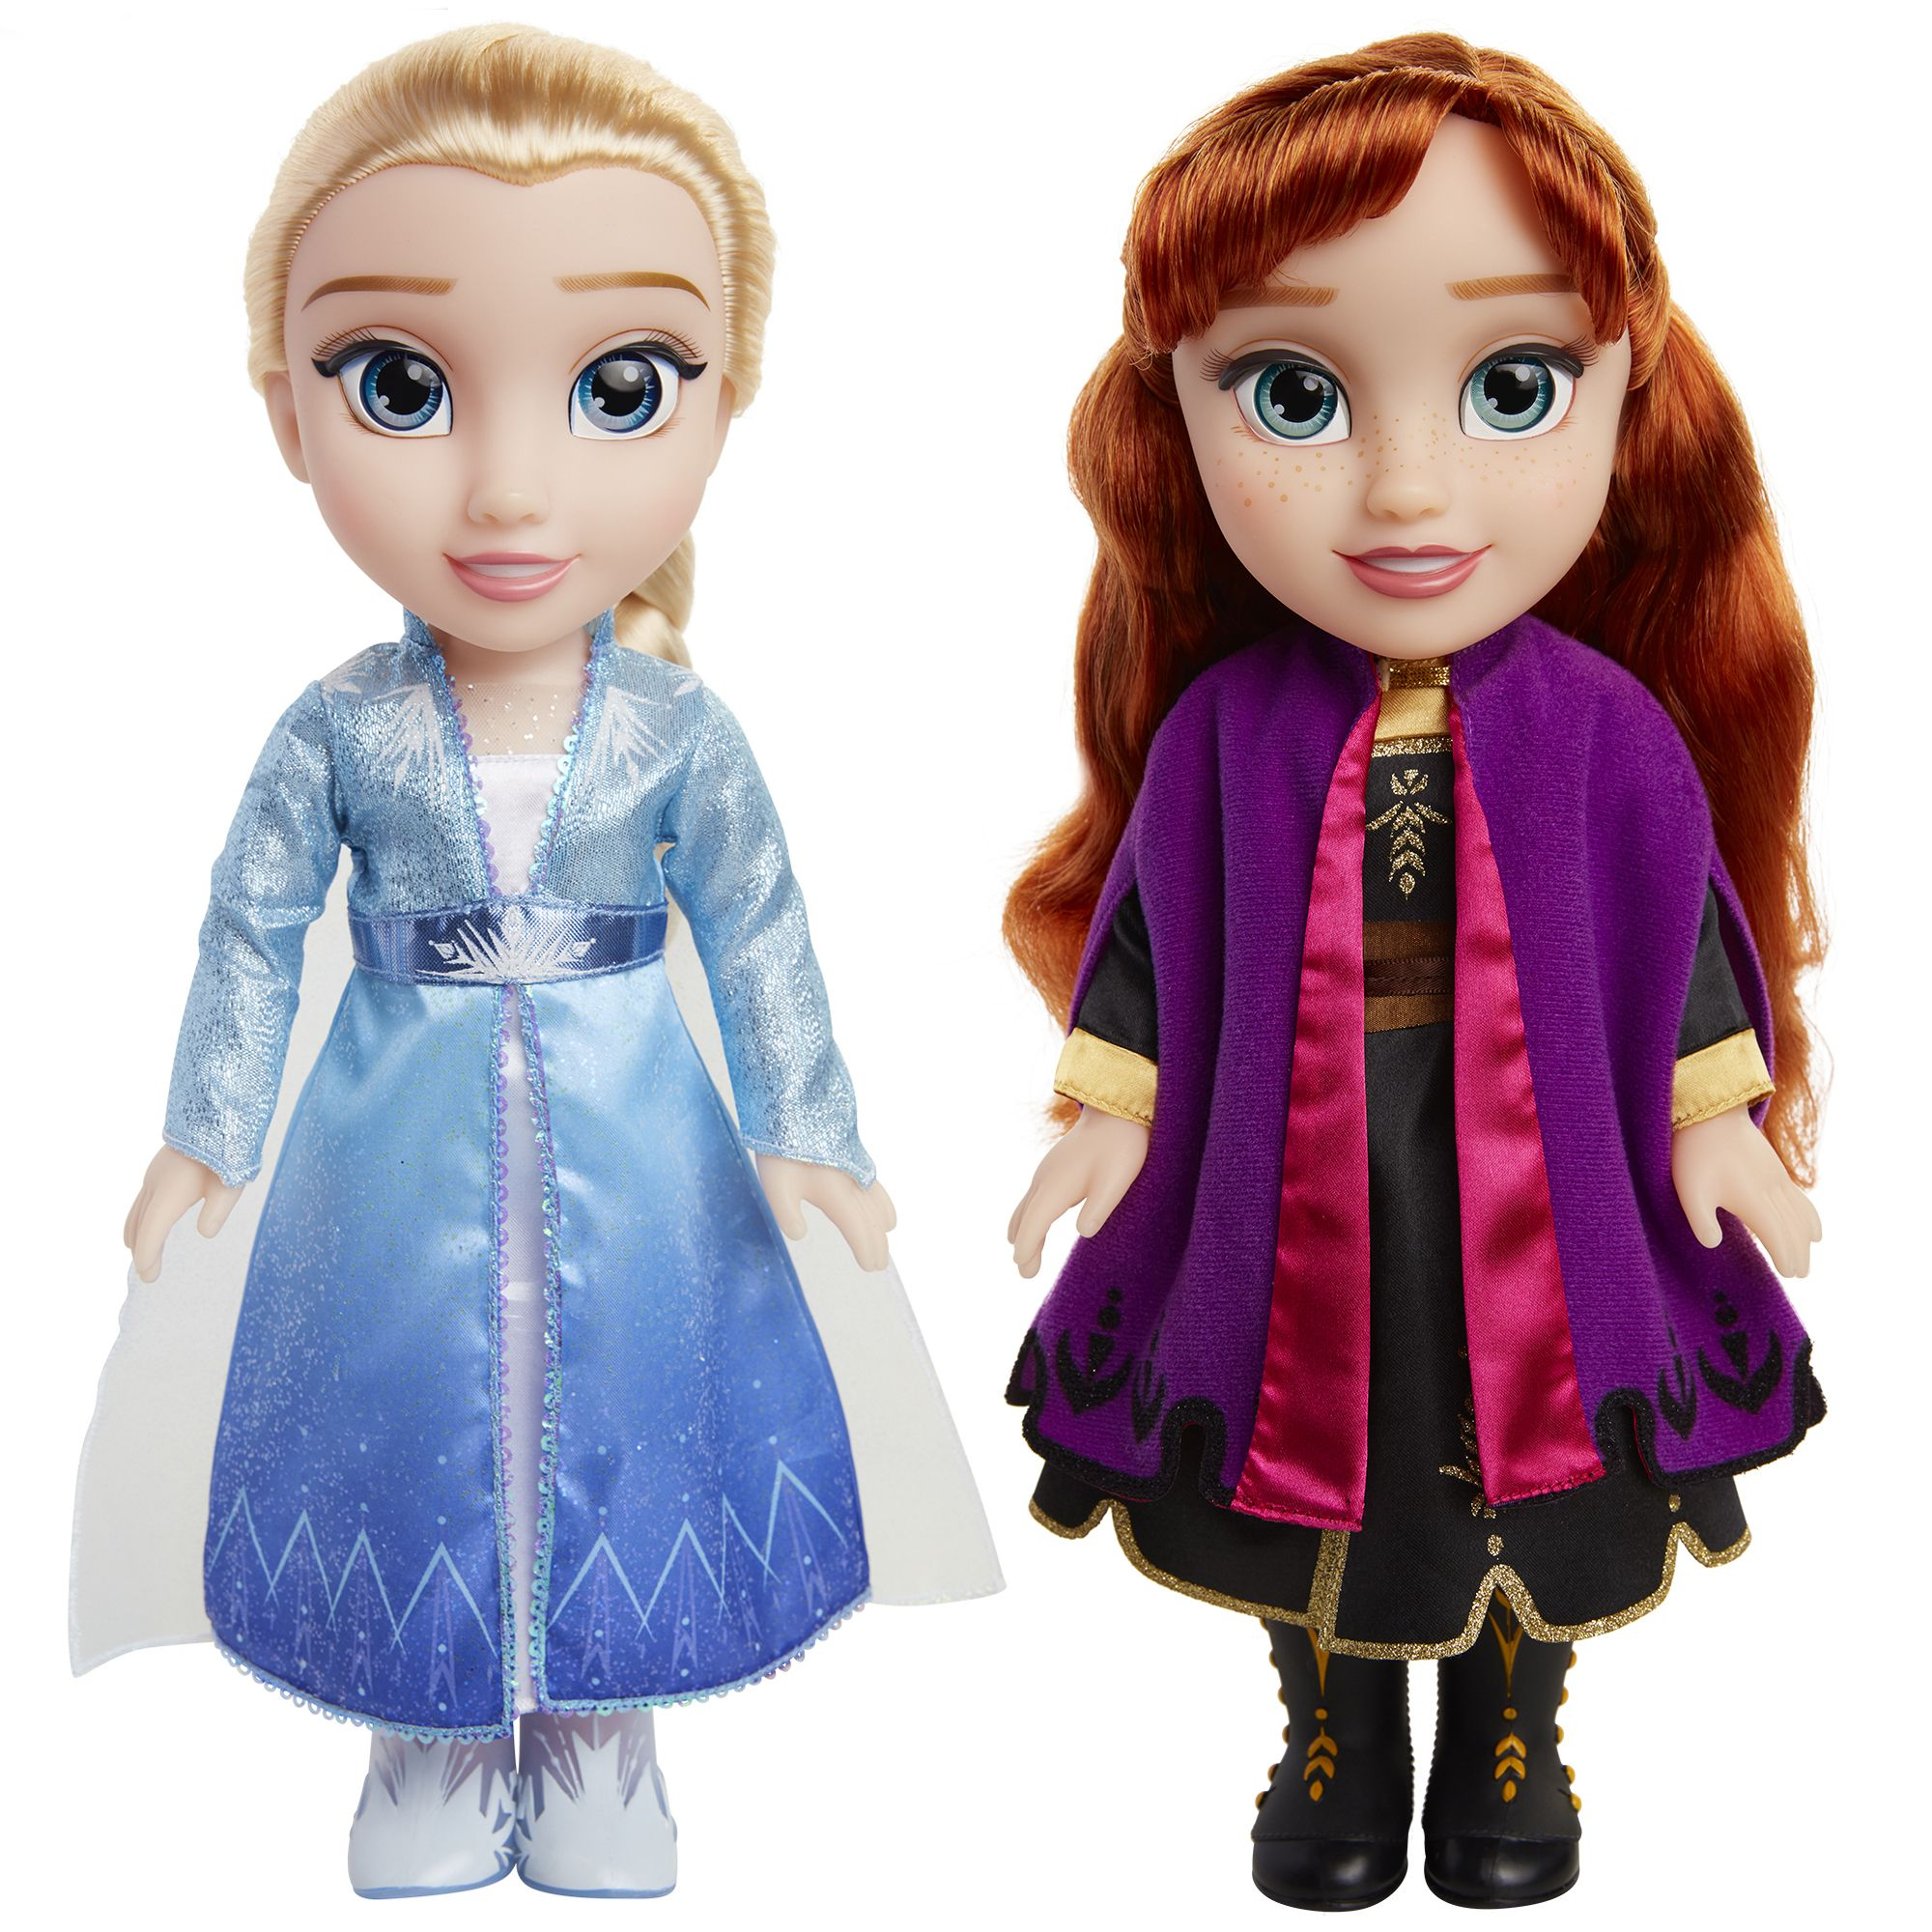 Disney Frozen 2 Princess Anna And Elsa Sister Interactive Feature Doll 2 Pack Walmart Exclusive Walmart Com Elsa And Anna Dolls Elsa Doll Disney Frozen